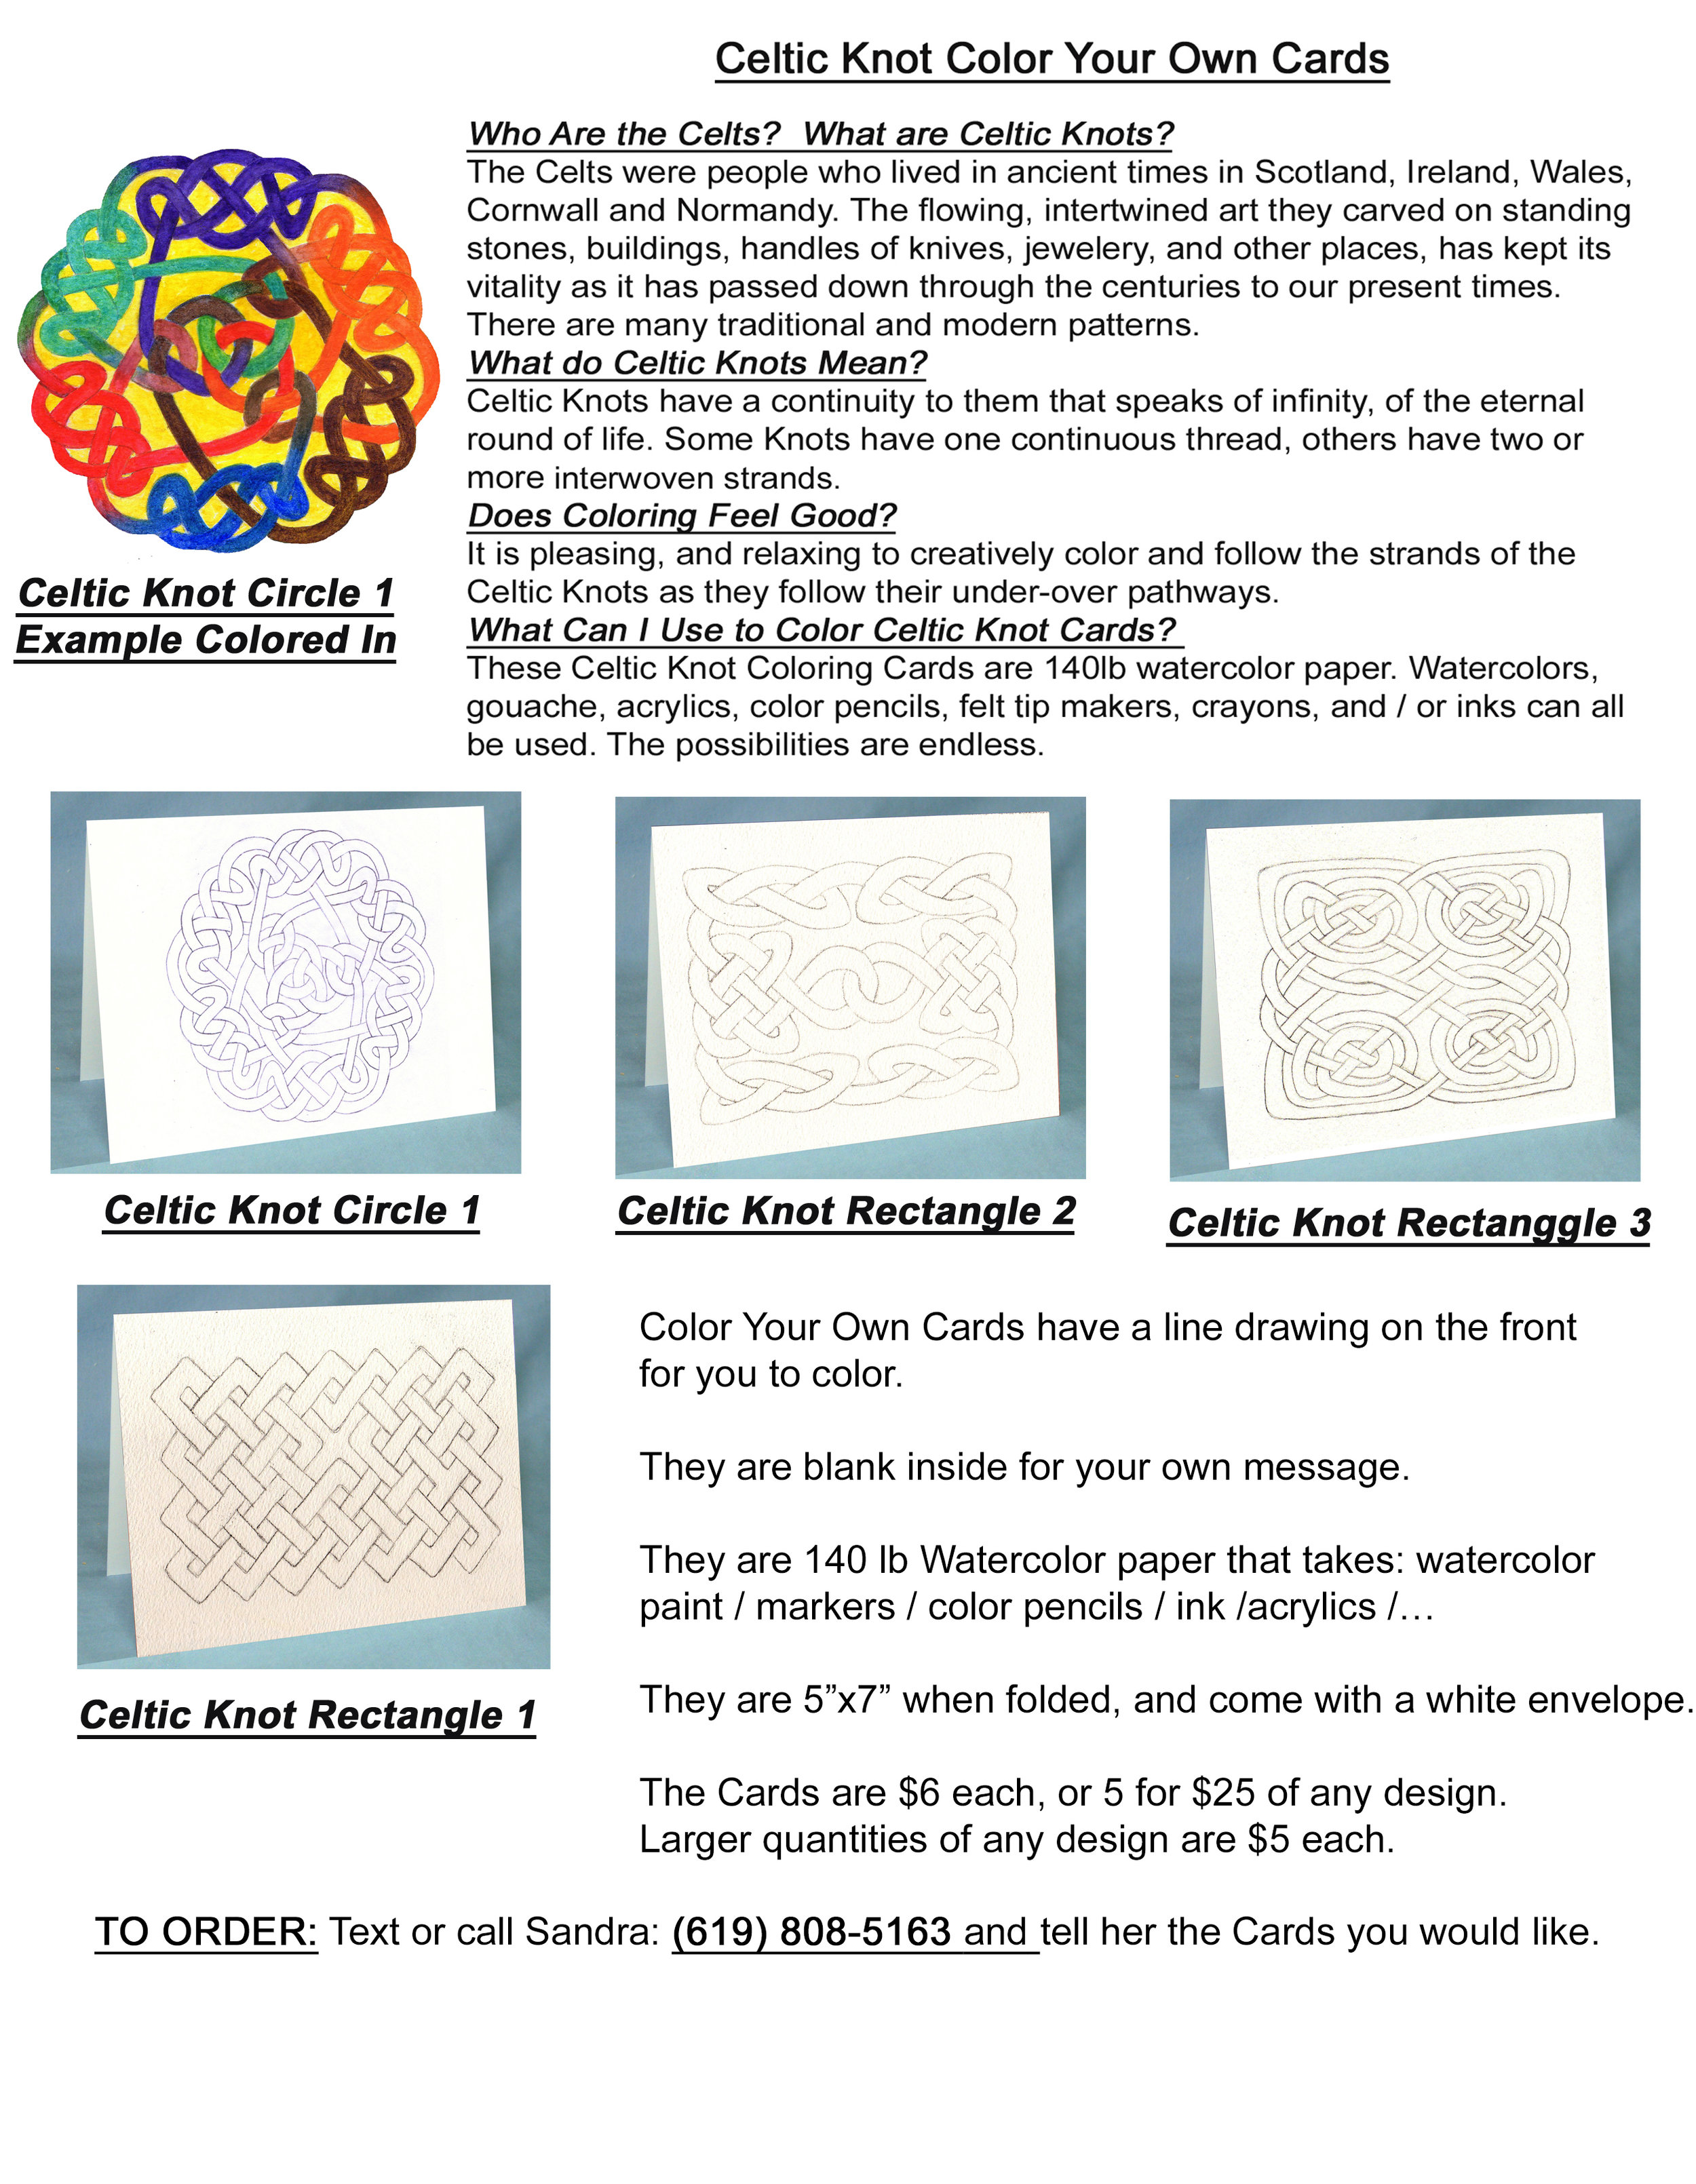 CARD Color Own PAGE for Website 11-21-18.jpg